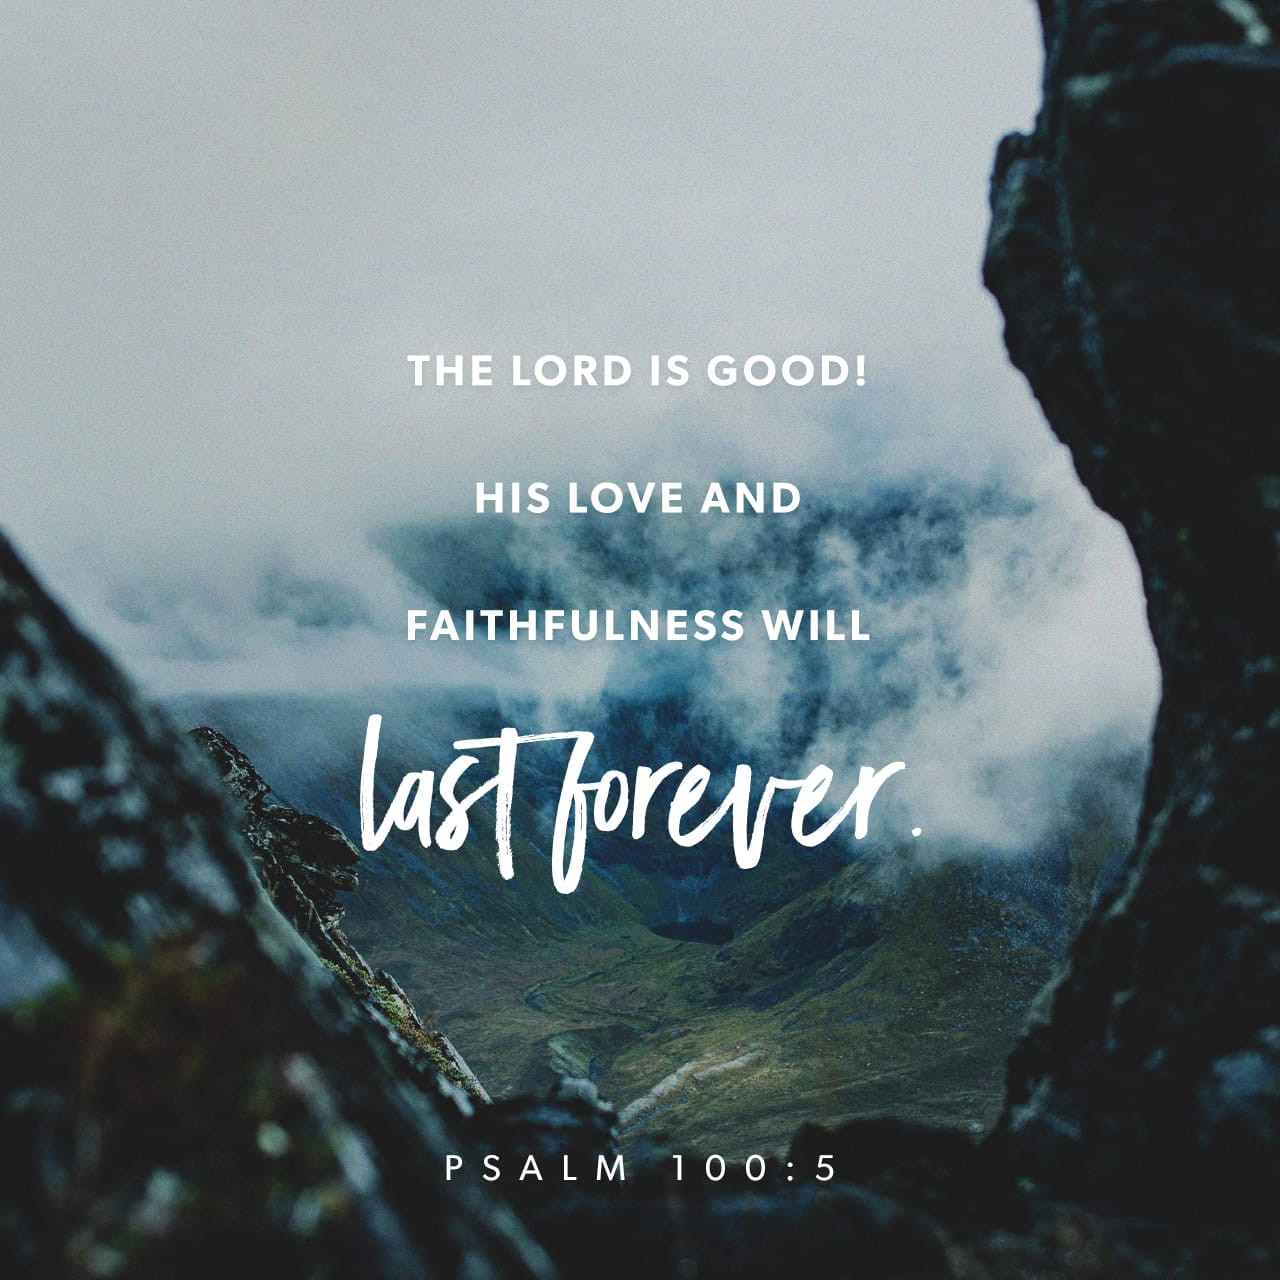 Psalms 100:5 For the LORD is good; his mercy is everlasting; and his truth endureth to all generations. | King James Version (KJV)